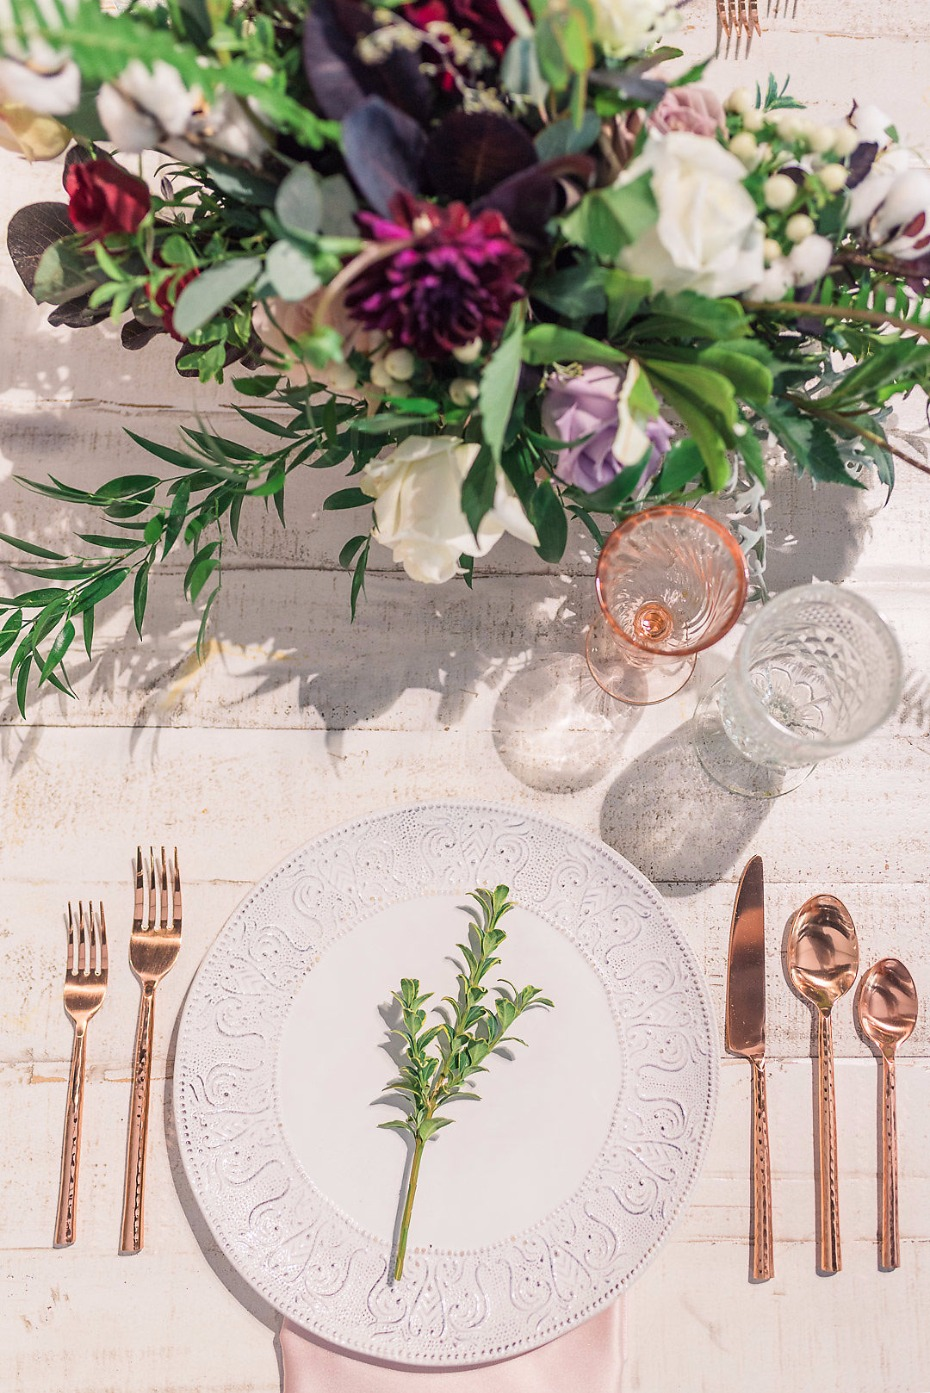 Simple place setting with rose gold flatware